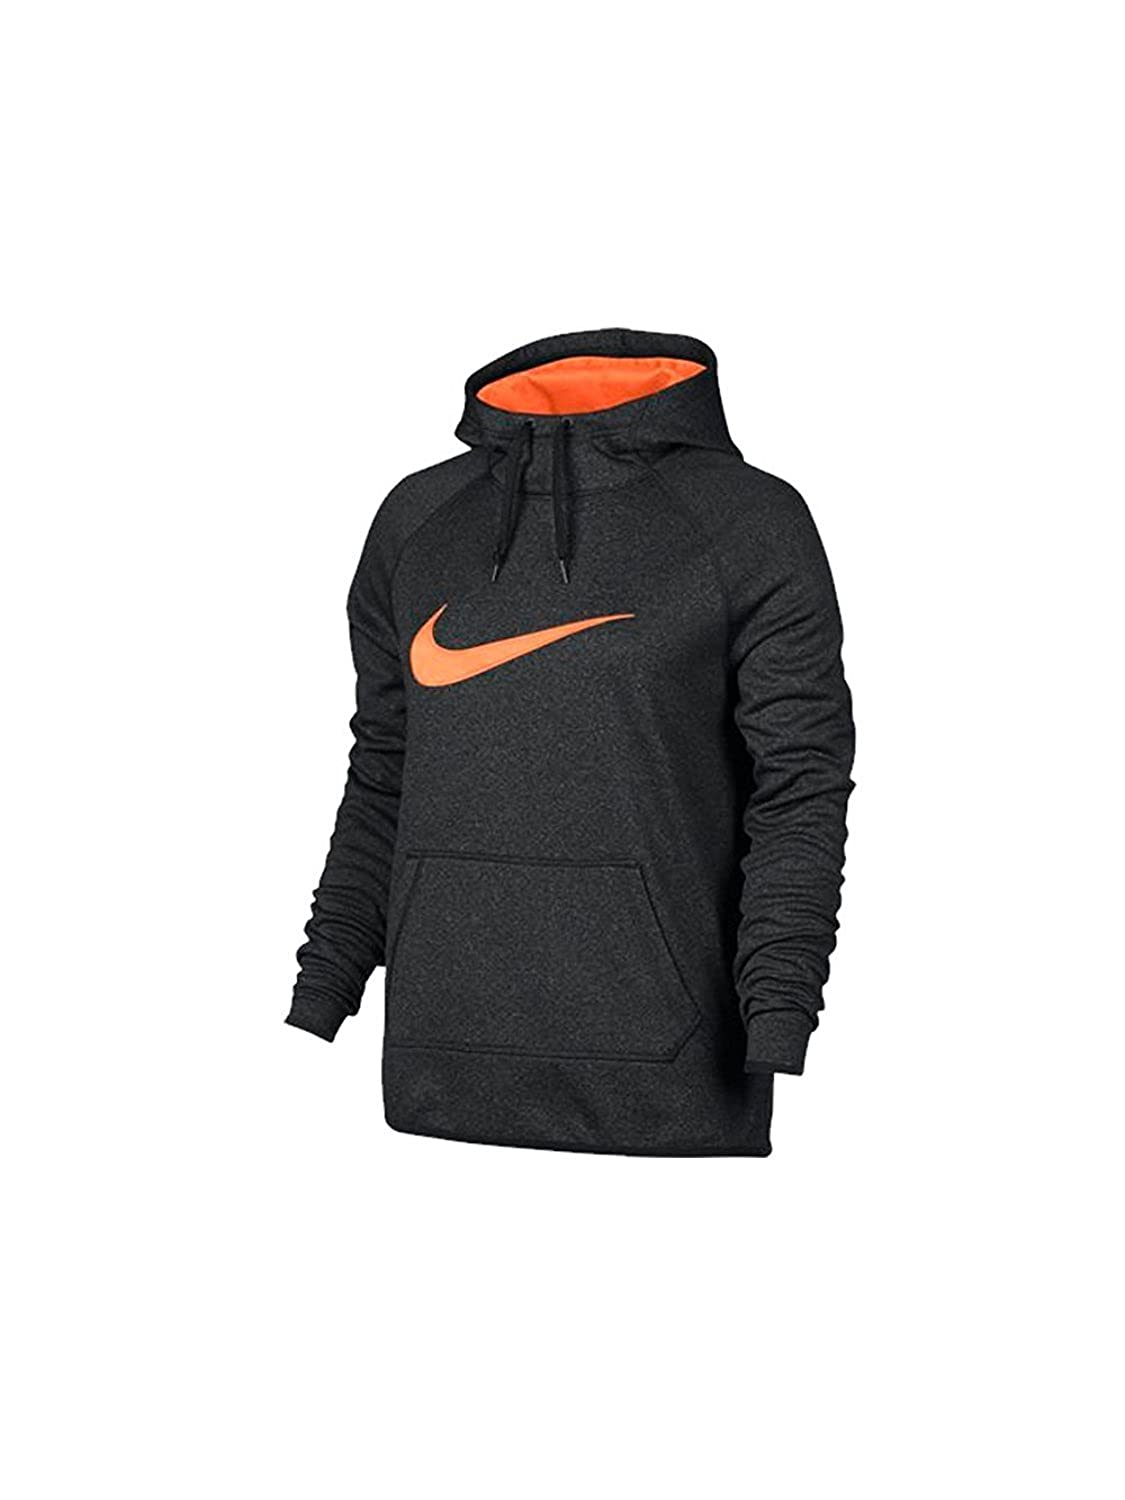 NIKE Women's Therma Dri-Fit Pullover Training Hoodie